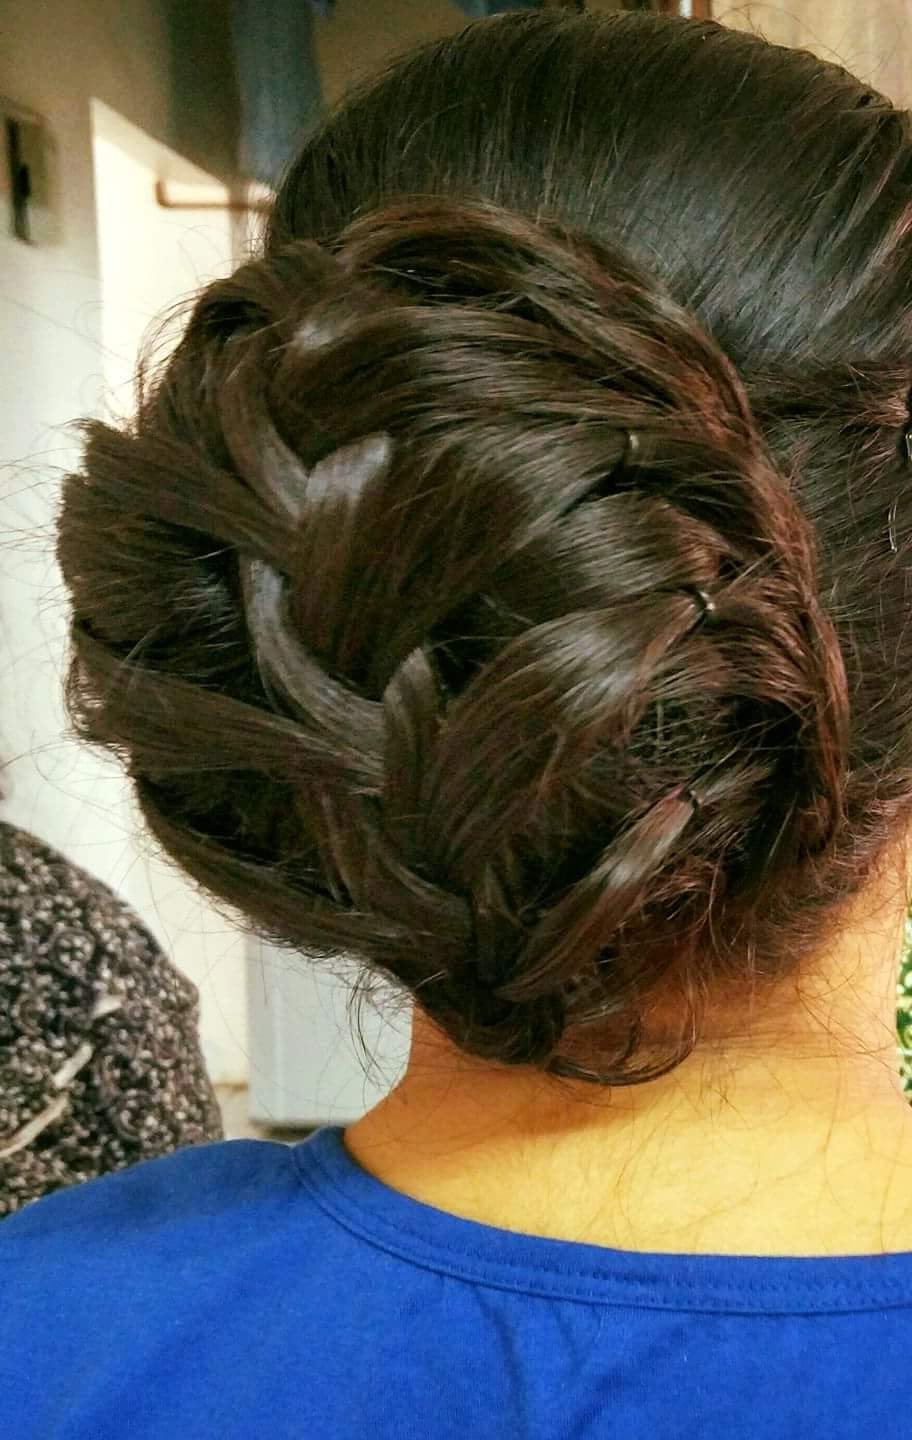 Latest Extra Thick Braided Bun Hairstyles For 65 Super Stylish Braided Bun Hairstyle To Leave Behind Some (View 14 of 20)